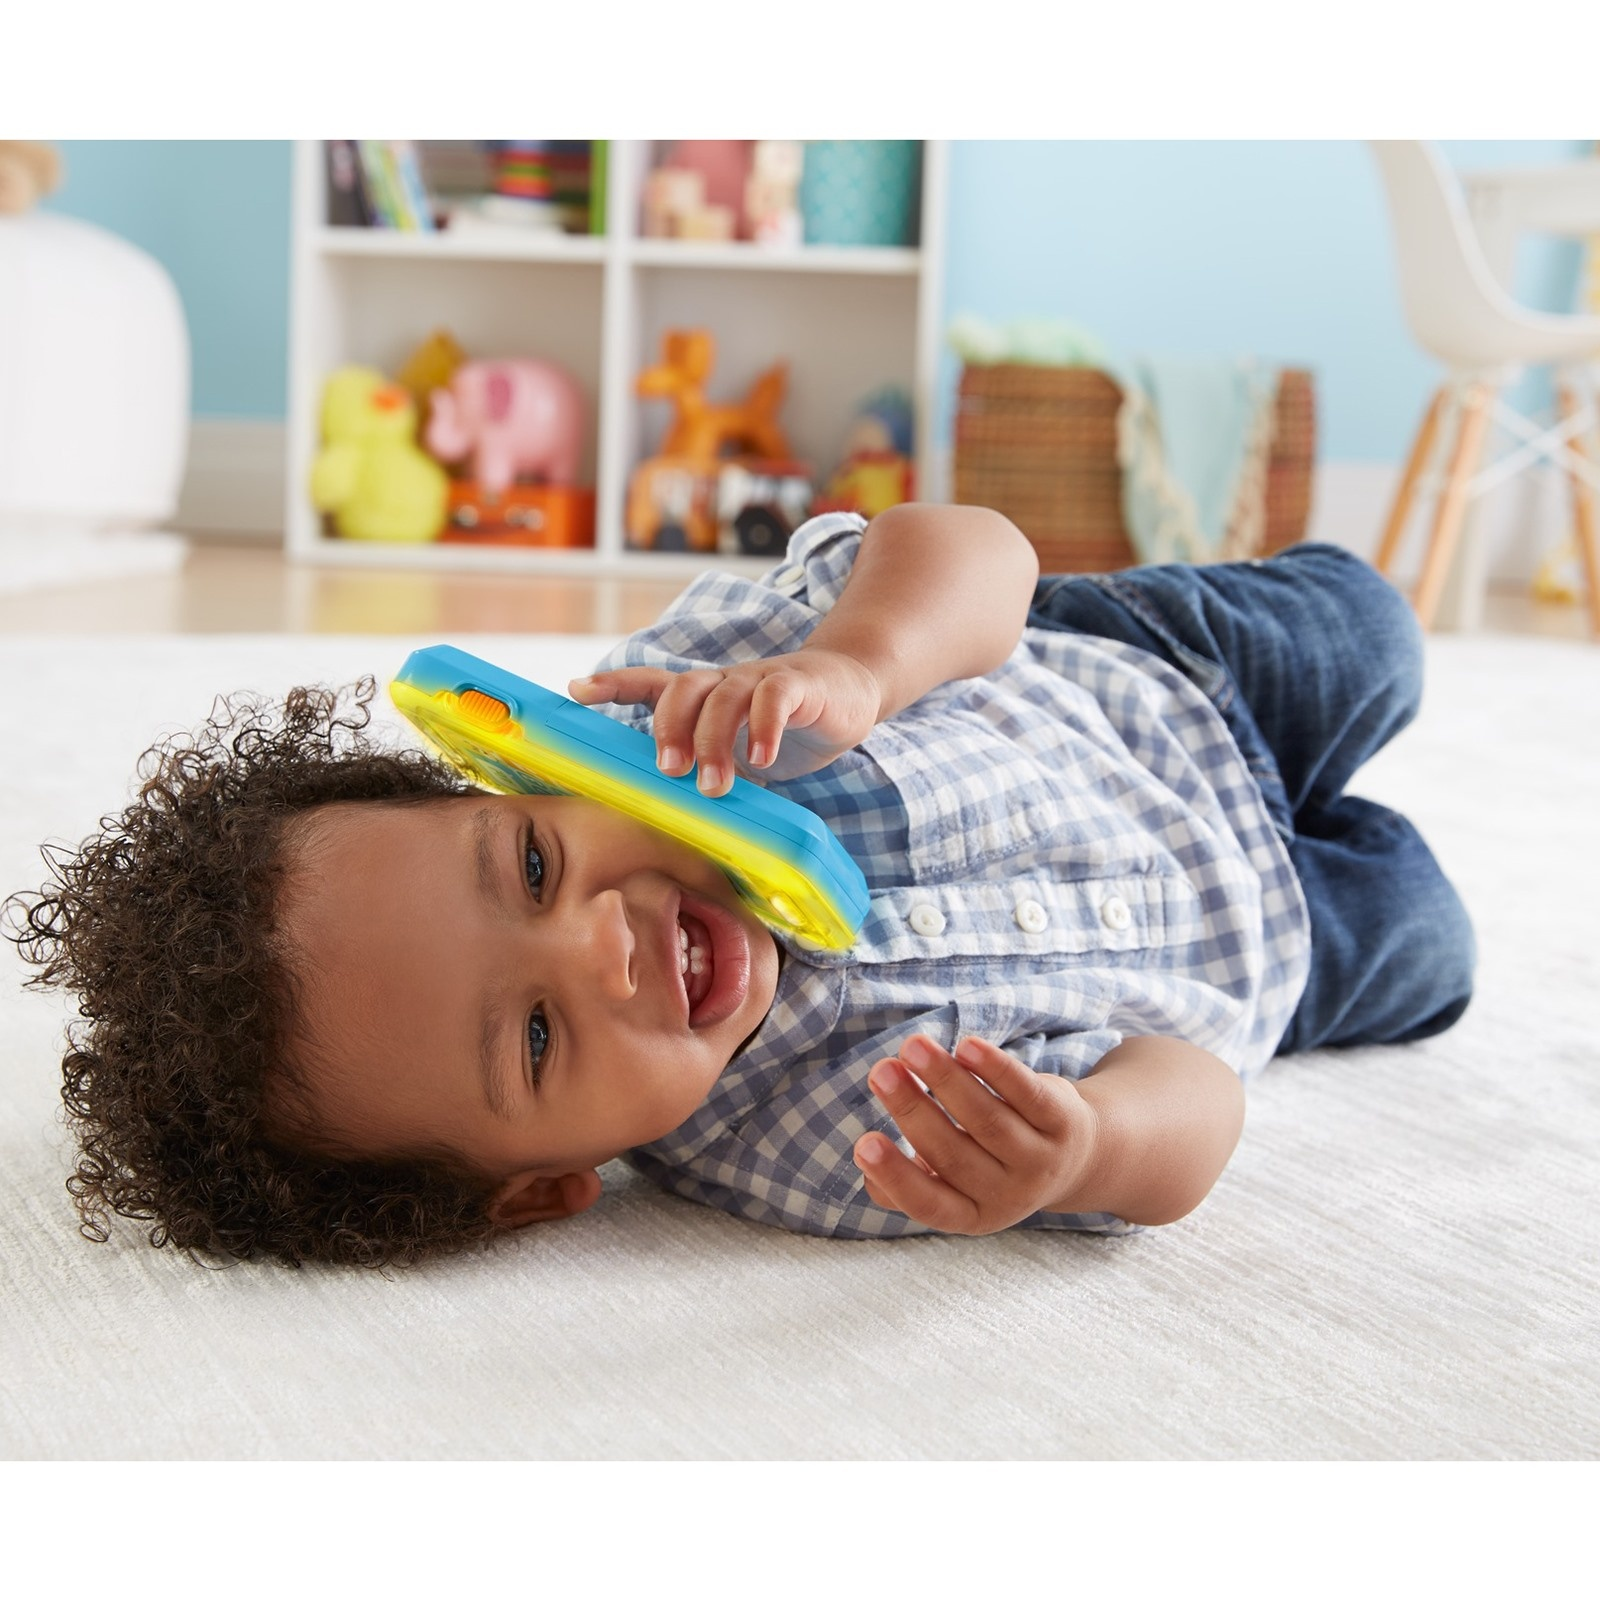 Fisher Price Laugh And Learn Smart Phone Turkish